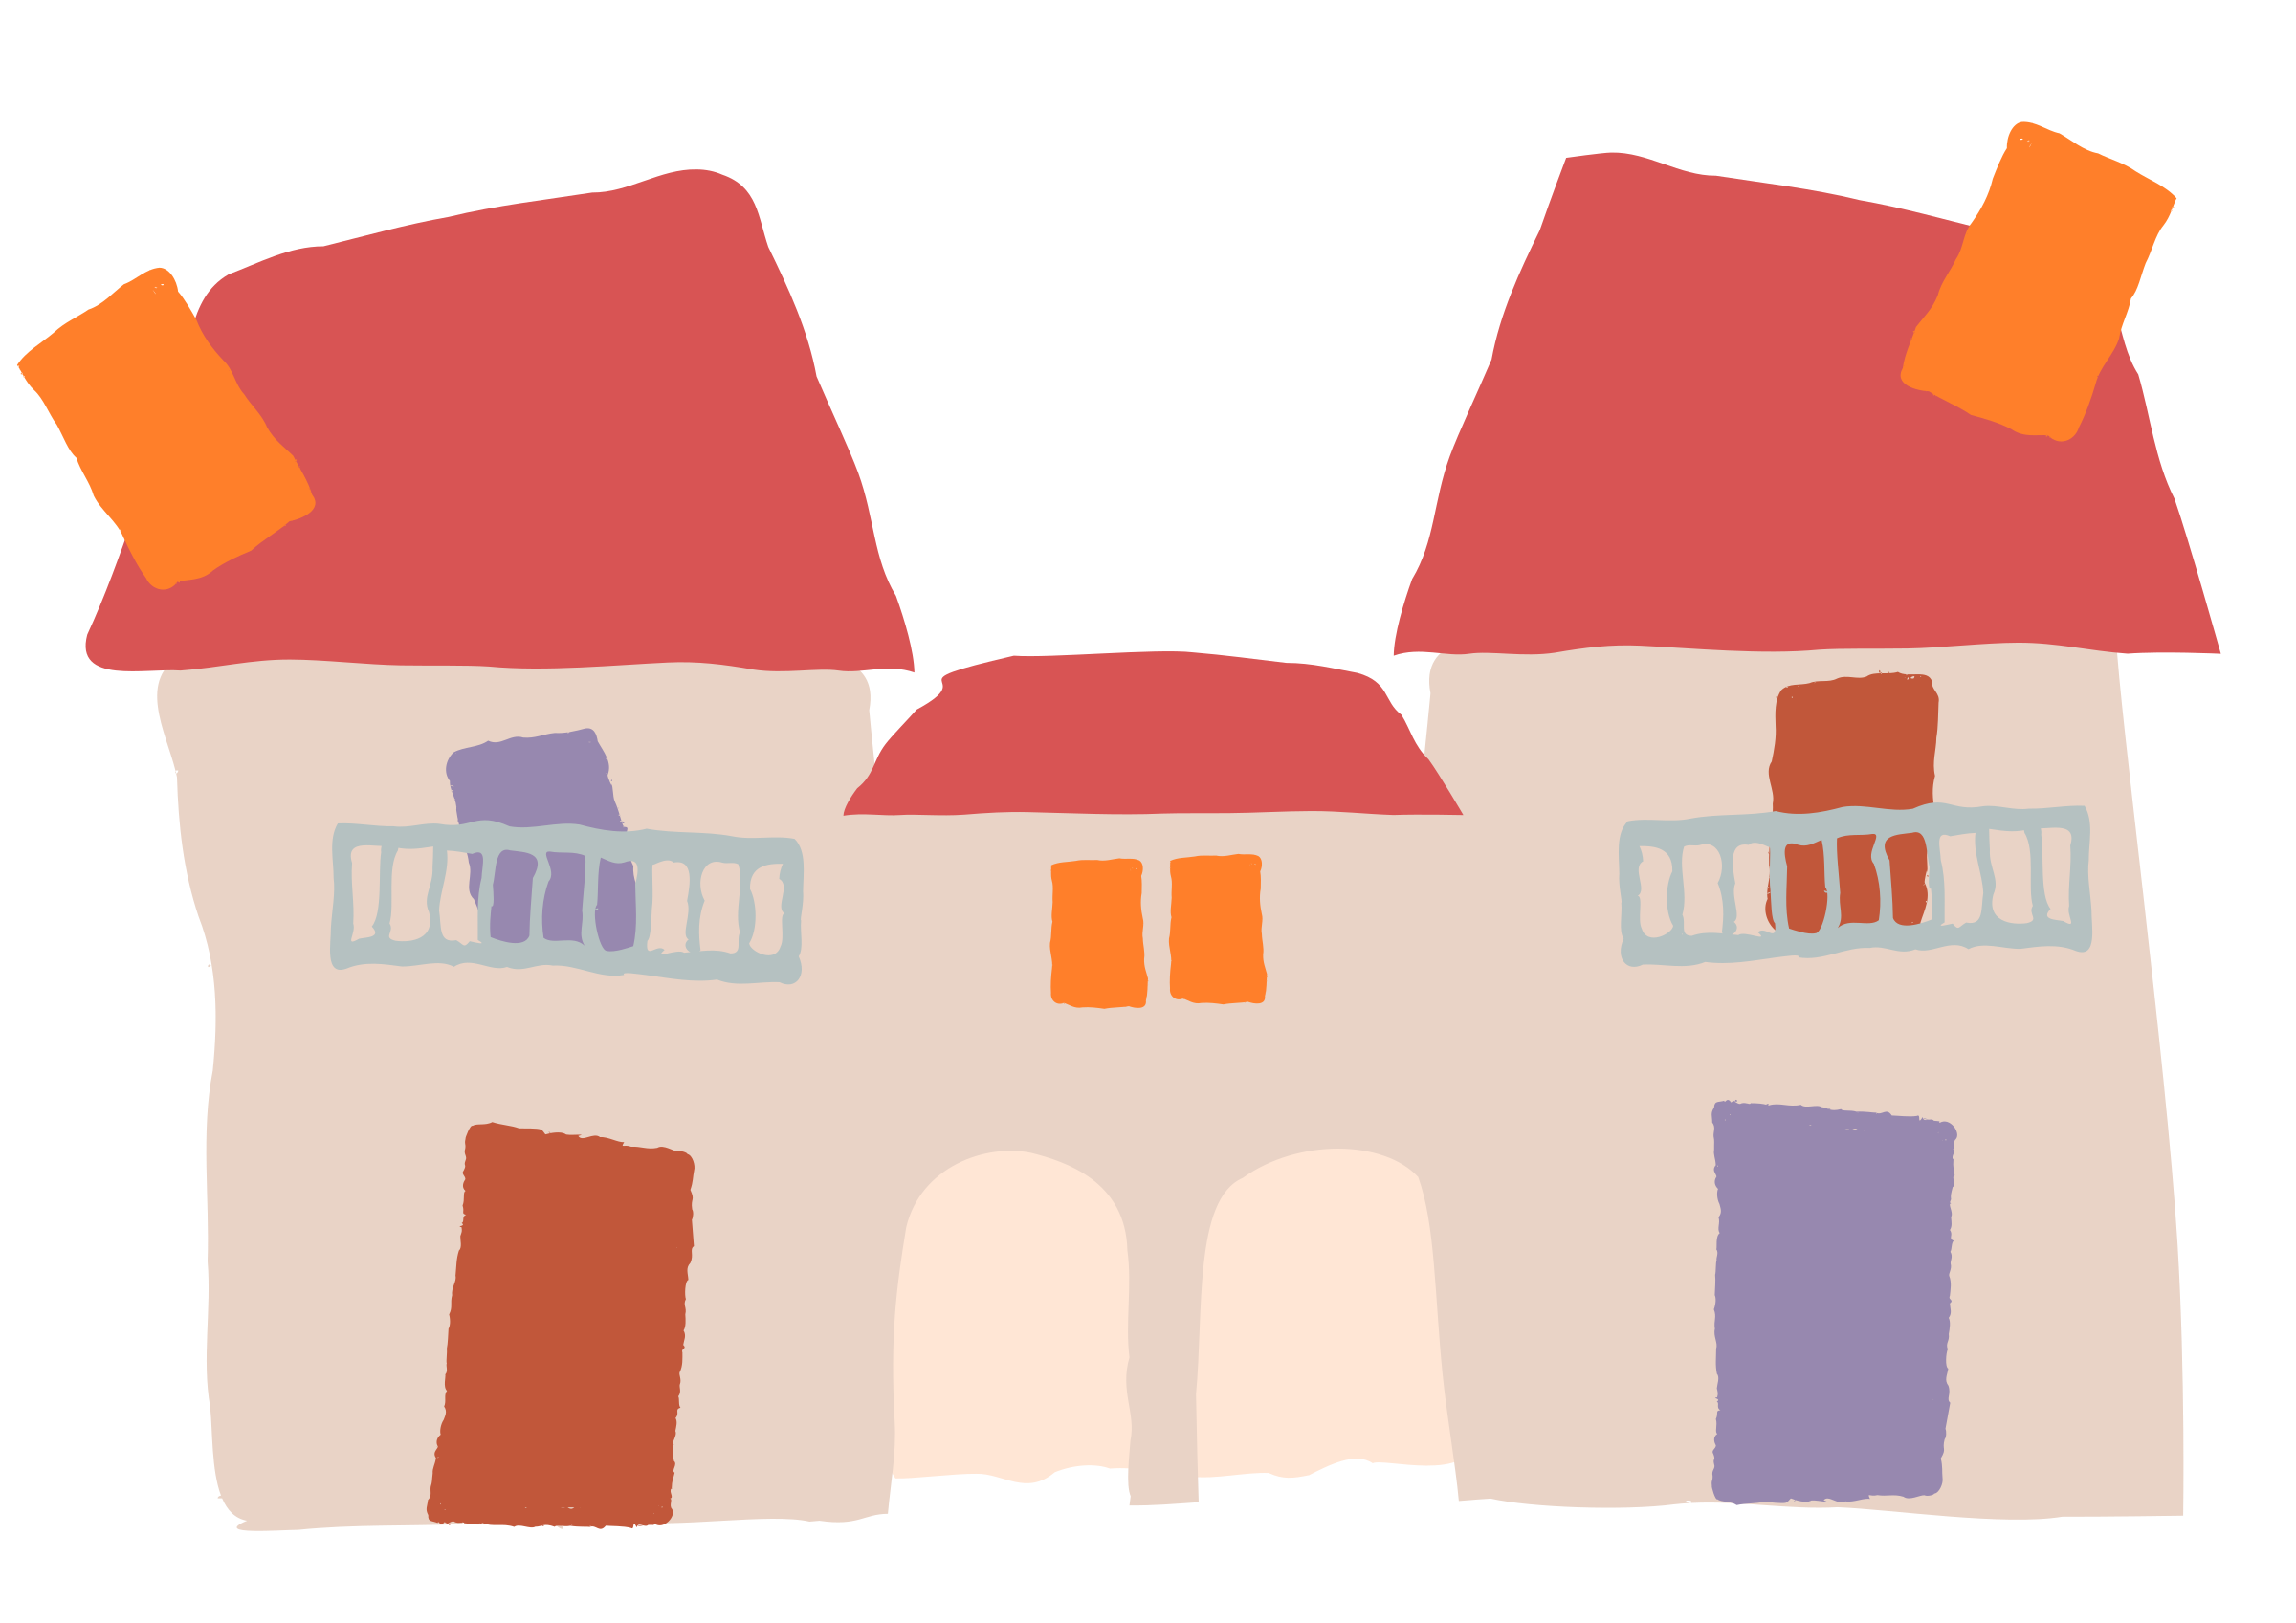 Crooked house big image. Houses clipart grey